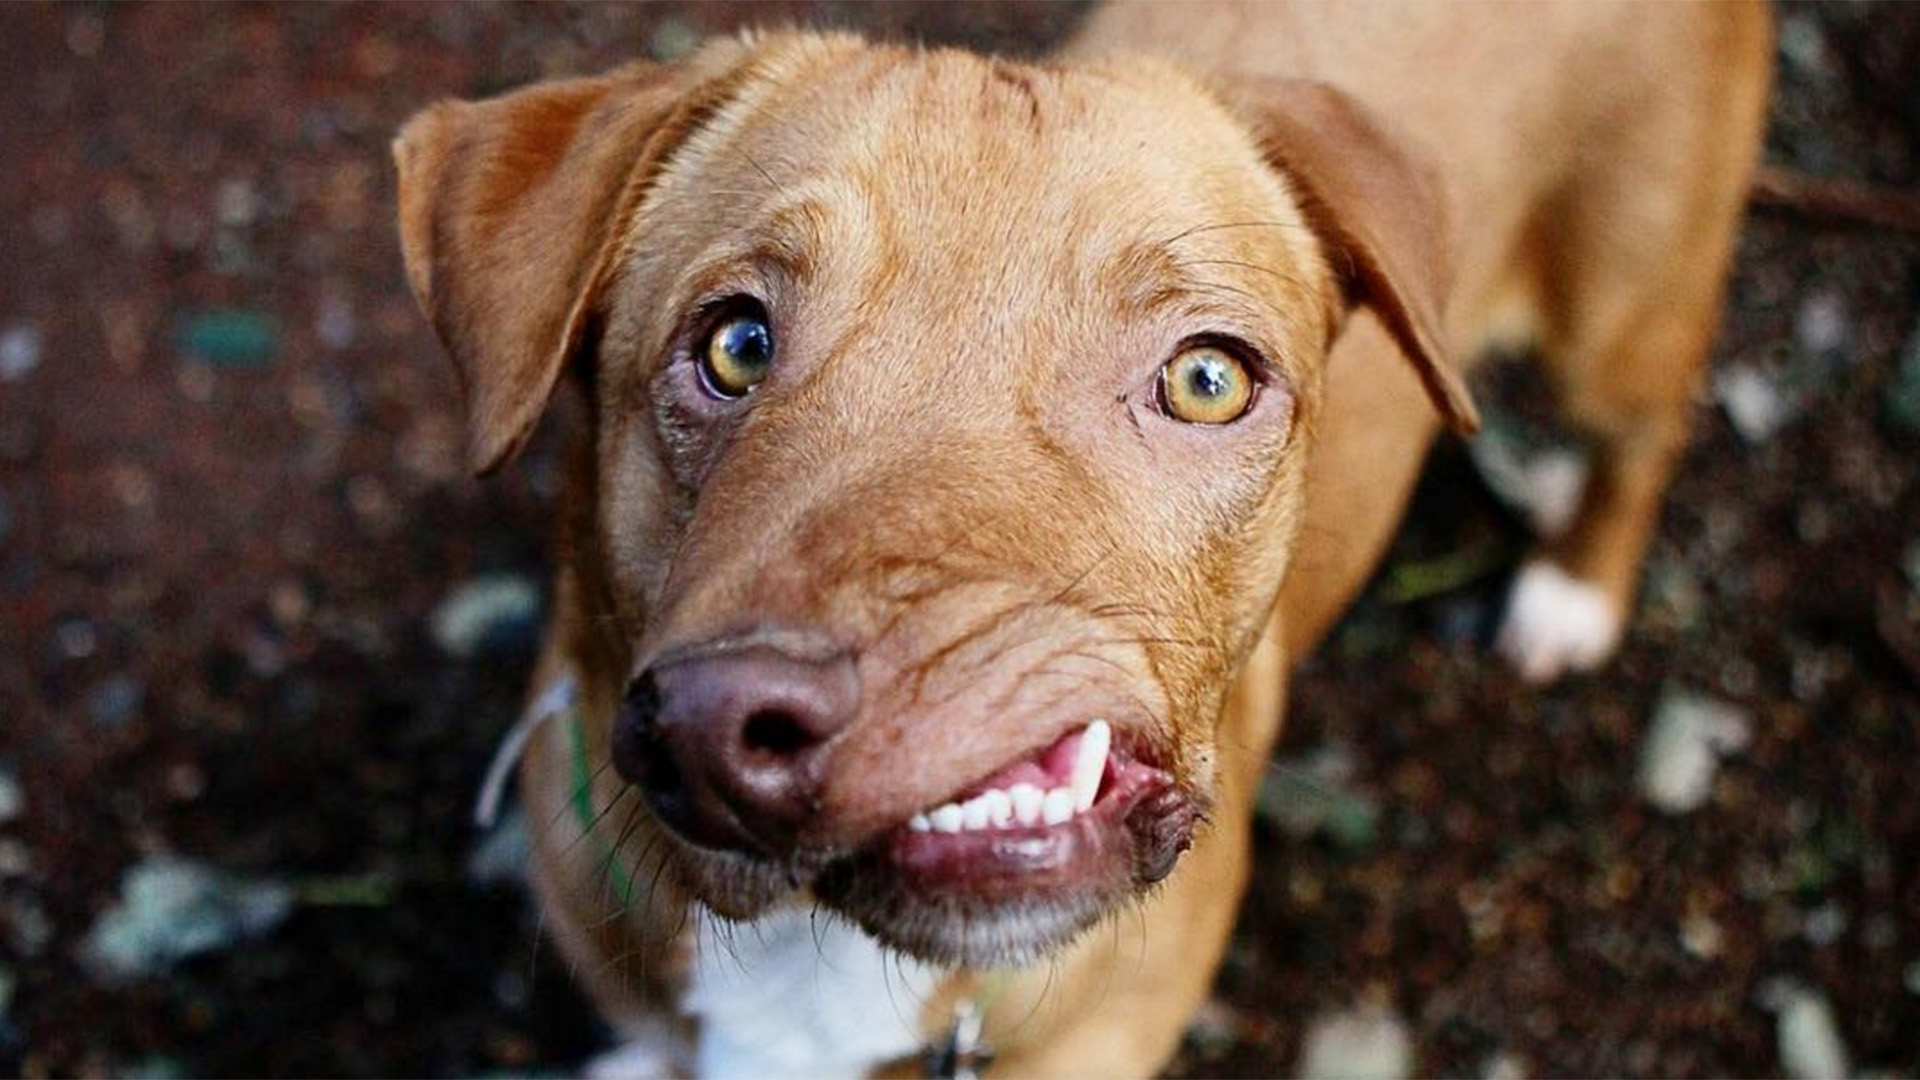 People are clamoring to adopt Picasso, the adorable dog ...